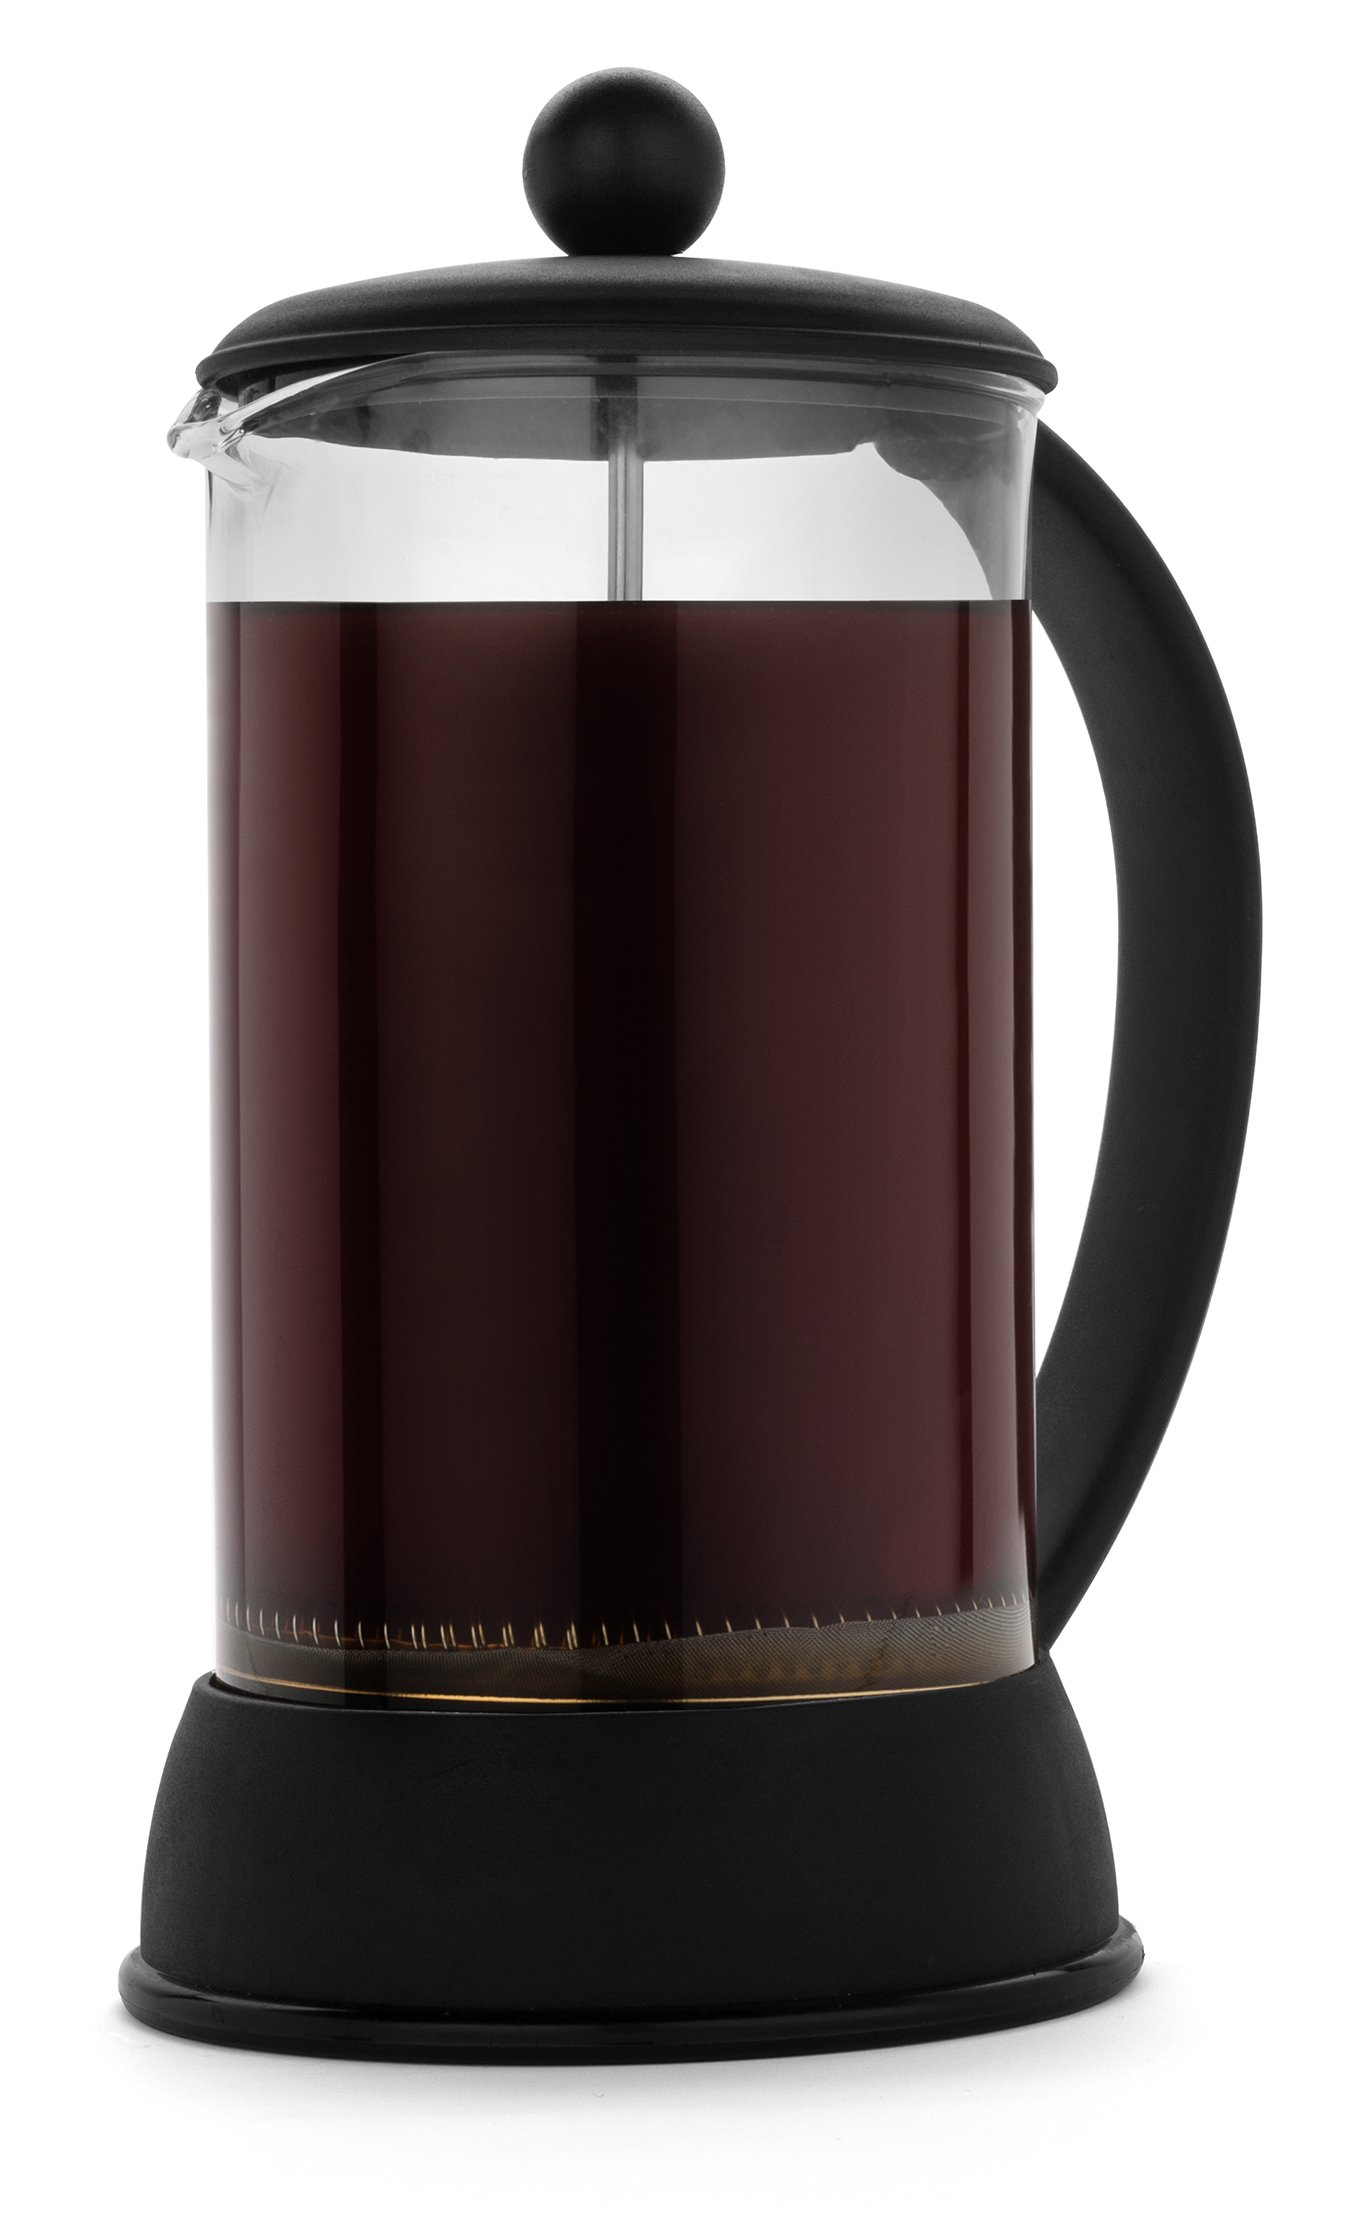 Glass Thermos Coffee Maker : FP Coffee Makers - French Press w/ Glass Carafe with stainlesss steel plunger... eBay